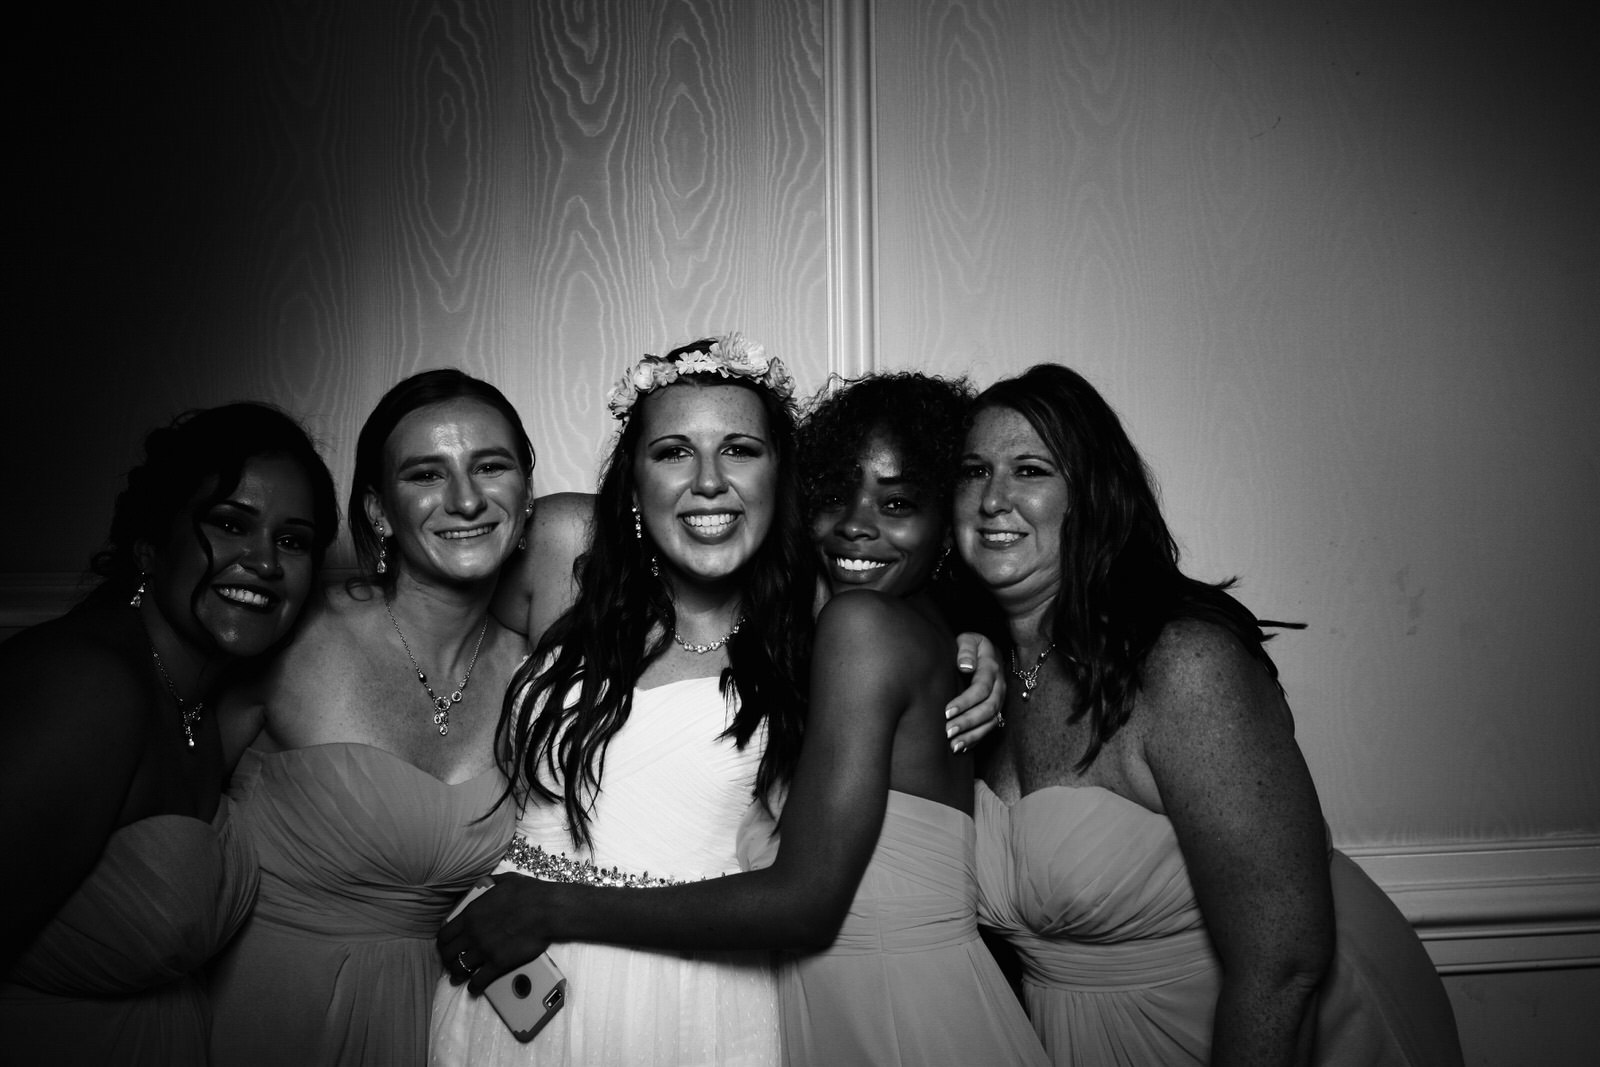 Ashley-Tyrone-Wedding-Photo-Booth-Presidential_Norristown-Wedding-34.jpg